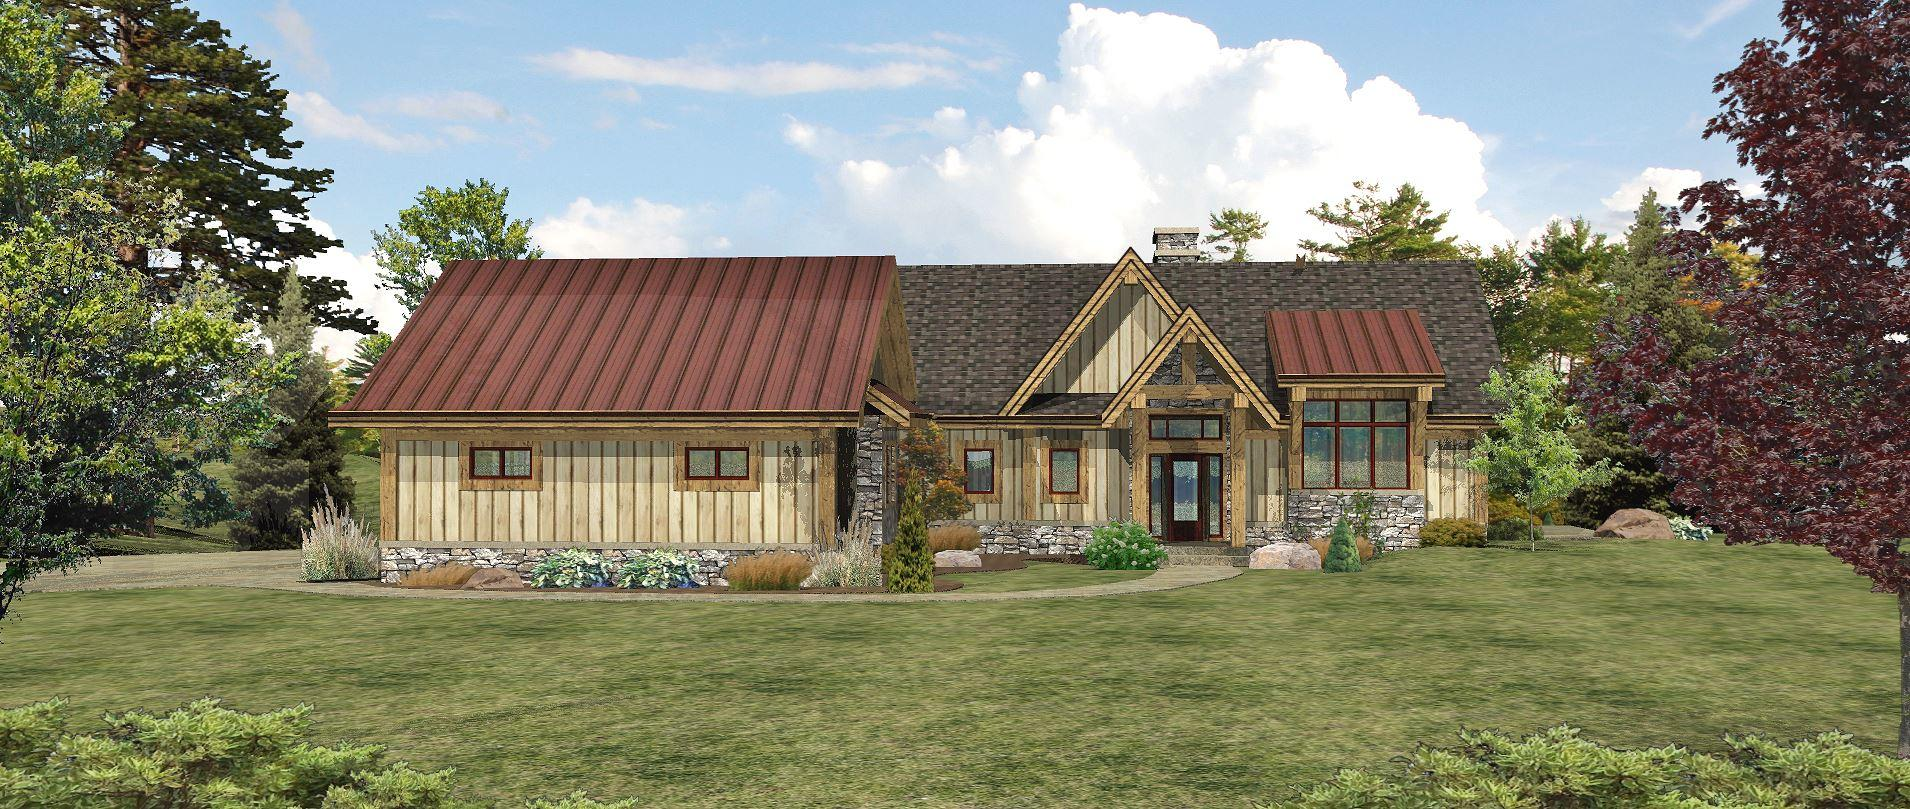 Lakefront - Front Rendering by Wisconsin Log Homes 2